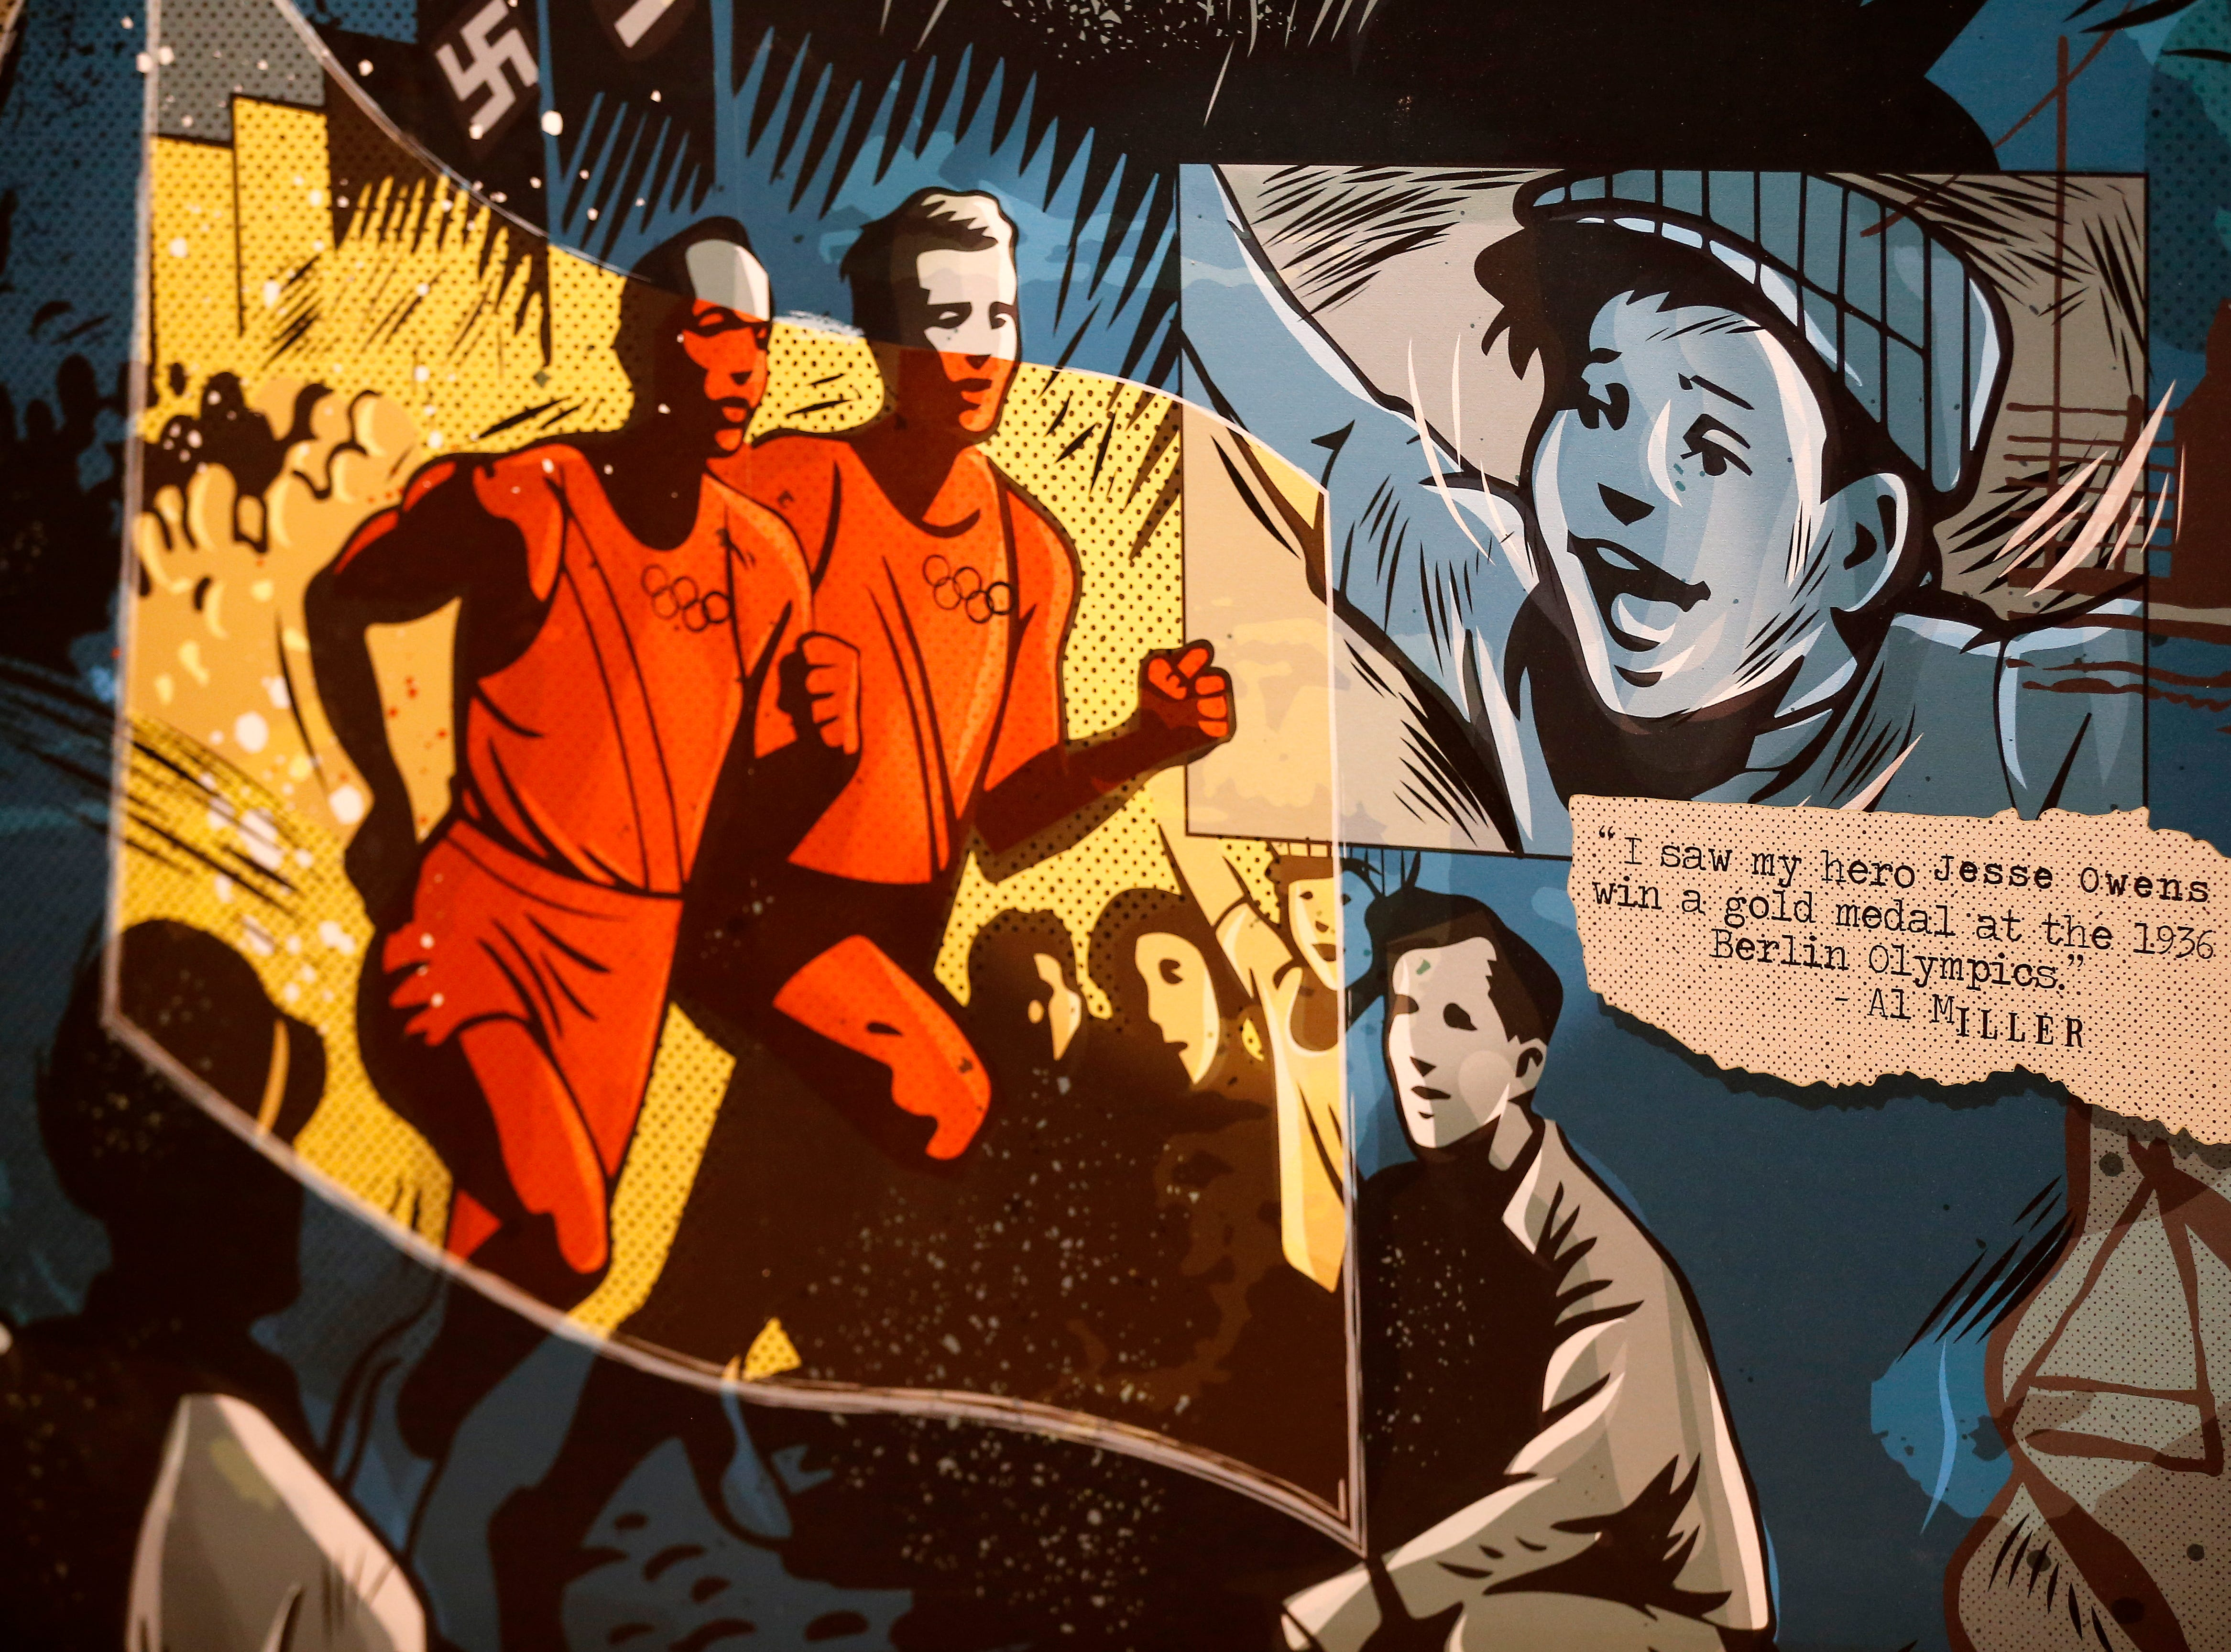 The stories of local Holocaust survivors, including Al Miller,  is depicted in a graphic novel style in the first section of the new Holocaust and Humanity Center at the Cincinnati Museum Center in the Queensgate neighborhood of Cincinnati on Tuesday, Jan. 22, 2019. The new exhibit covering the events before, during and after the Holocaust will be open to the public Jan. 27.